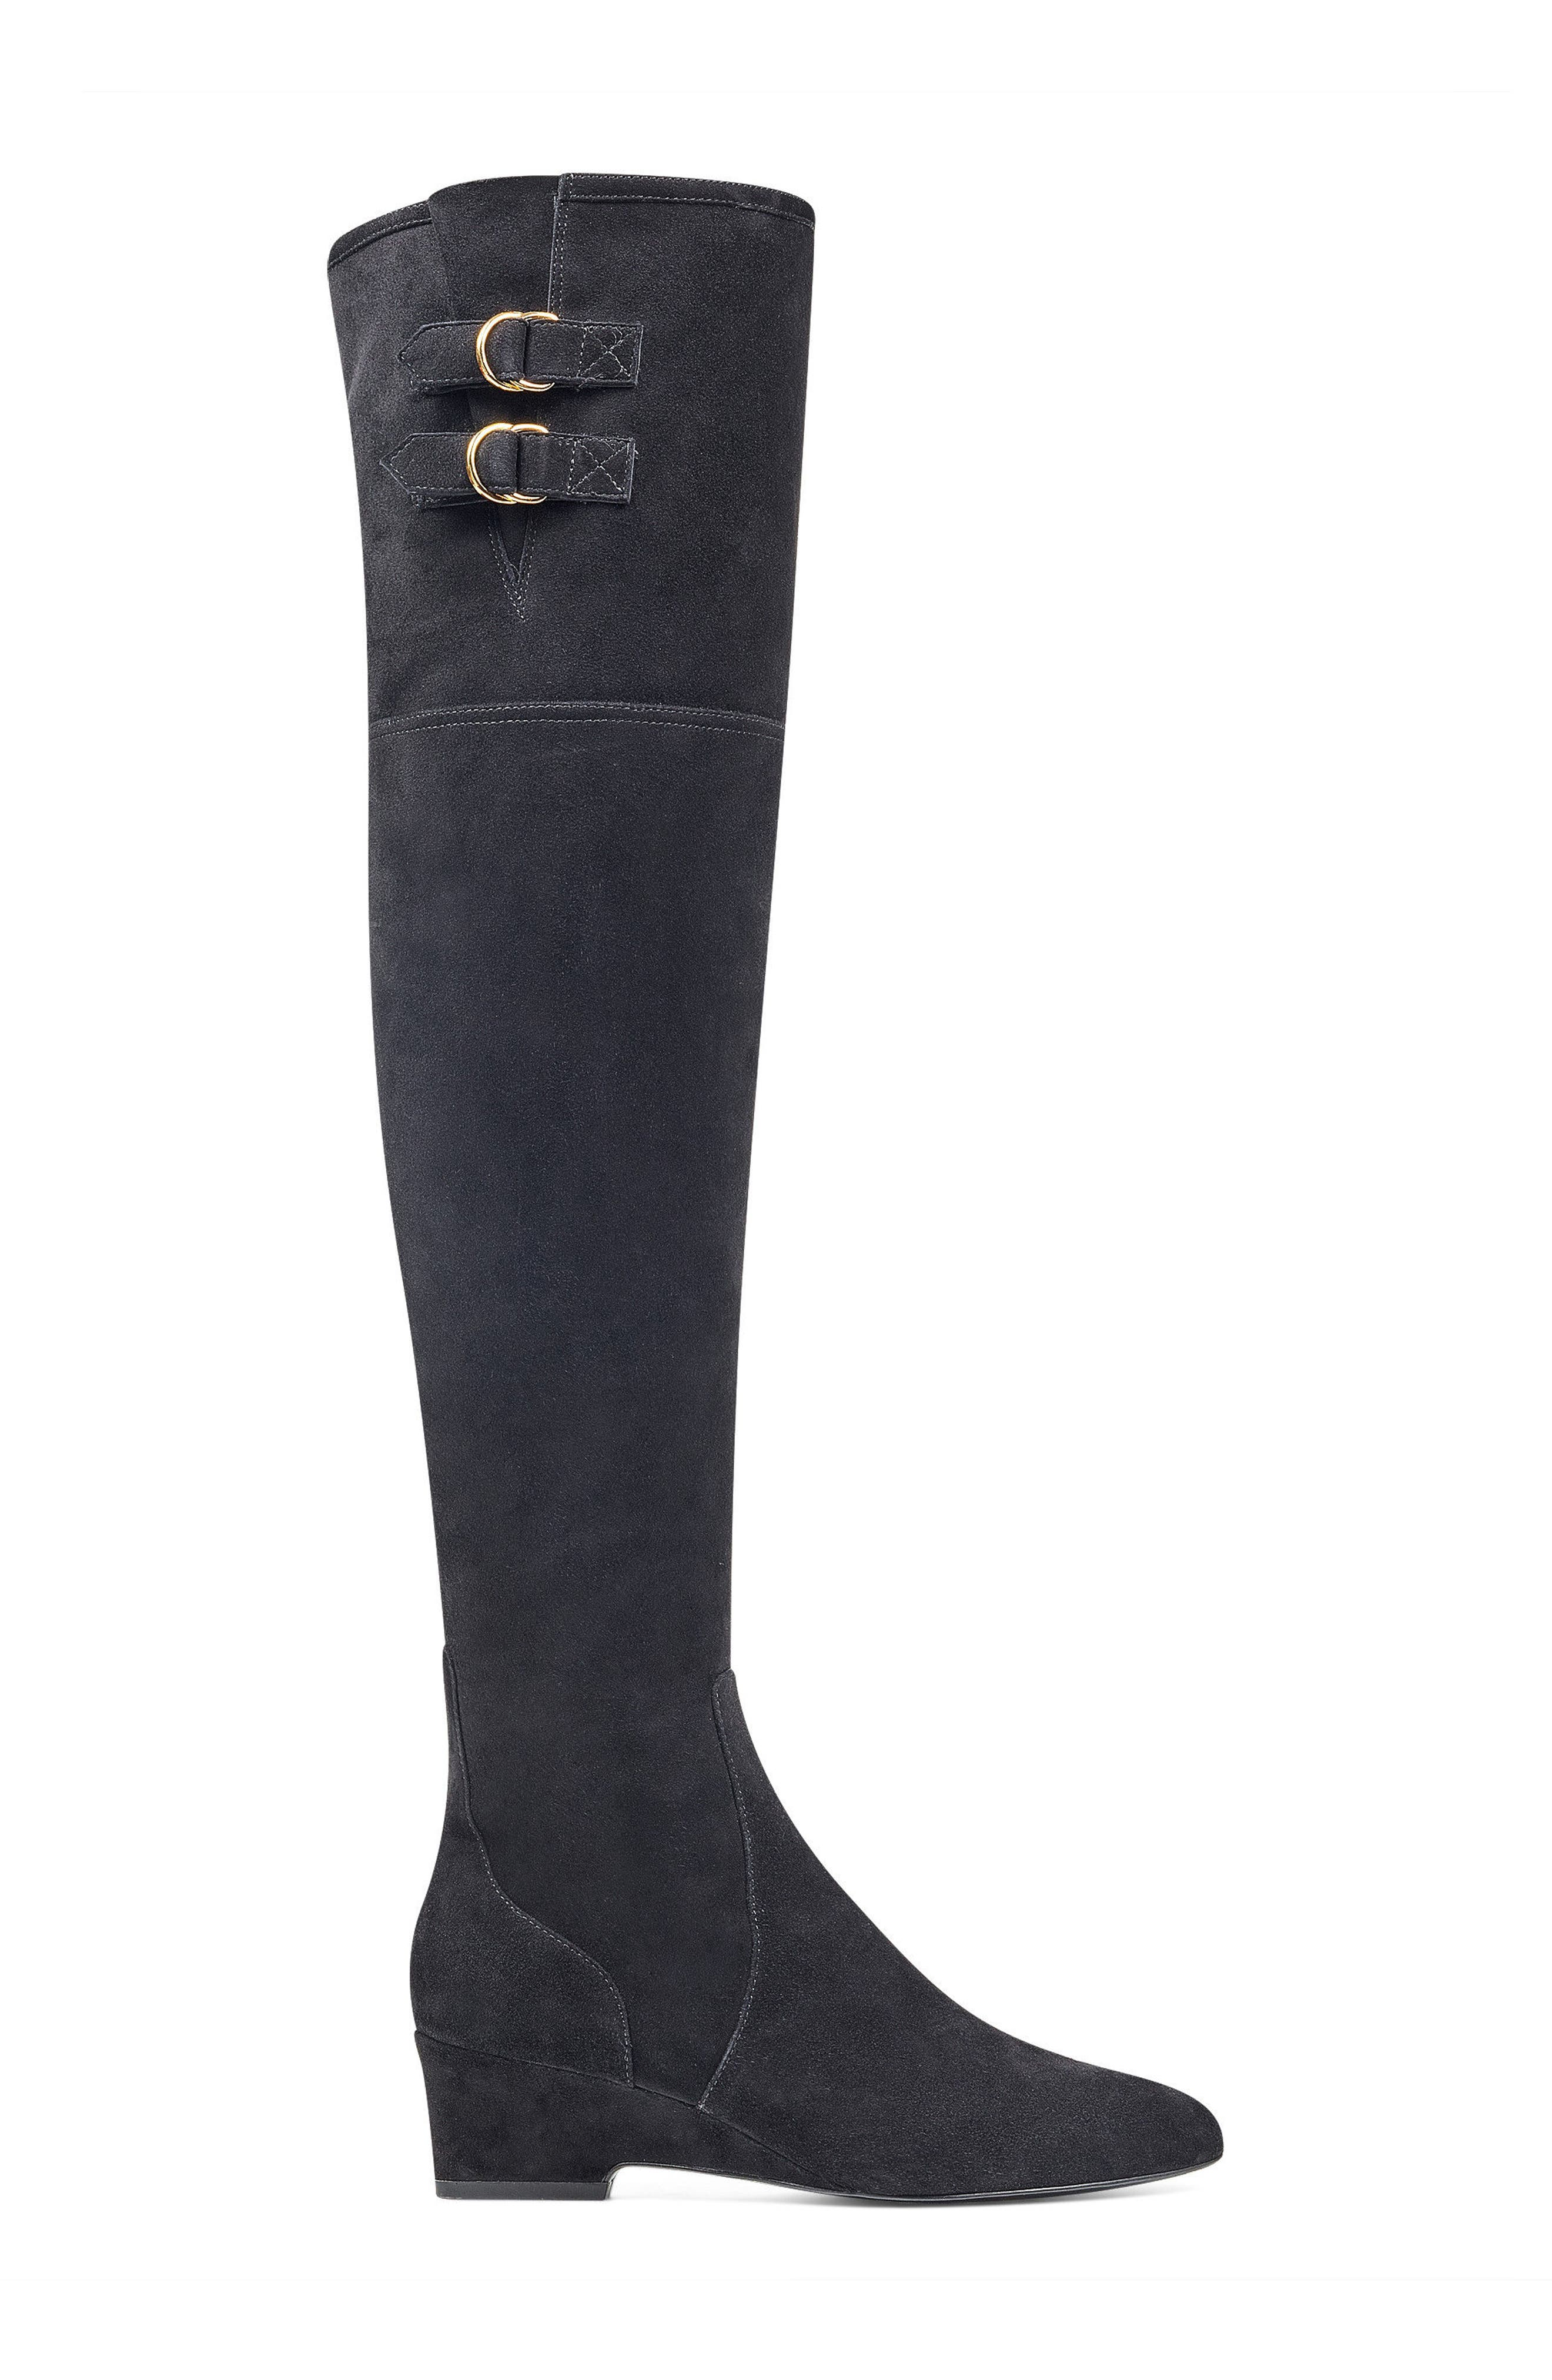 NINE WEST,                             Jaen Over the Knee Boot,                             Alternate thumbnail 3, color,                             001